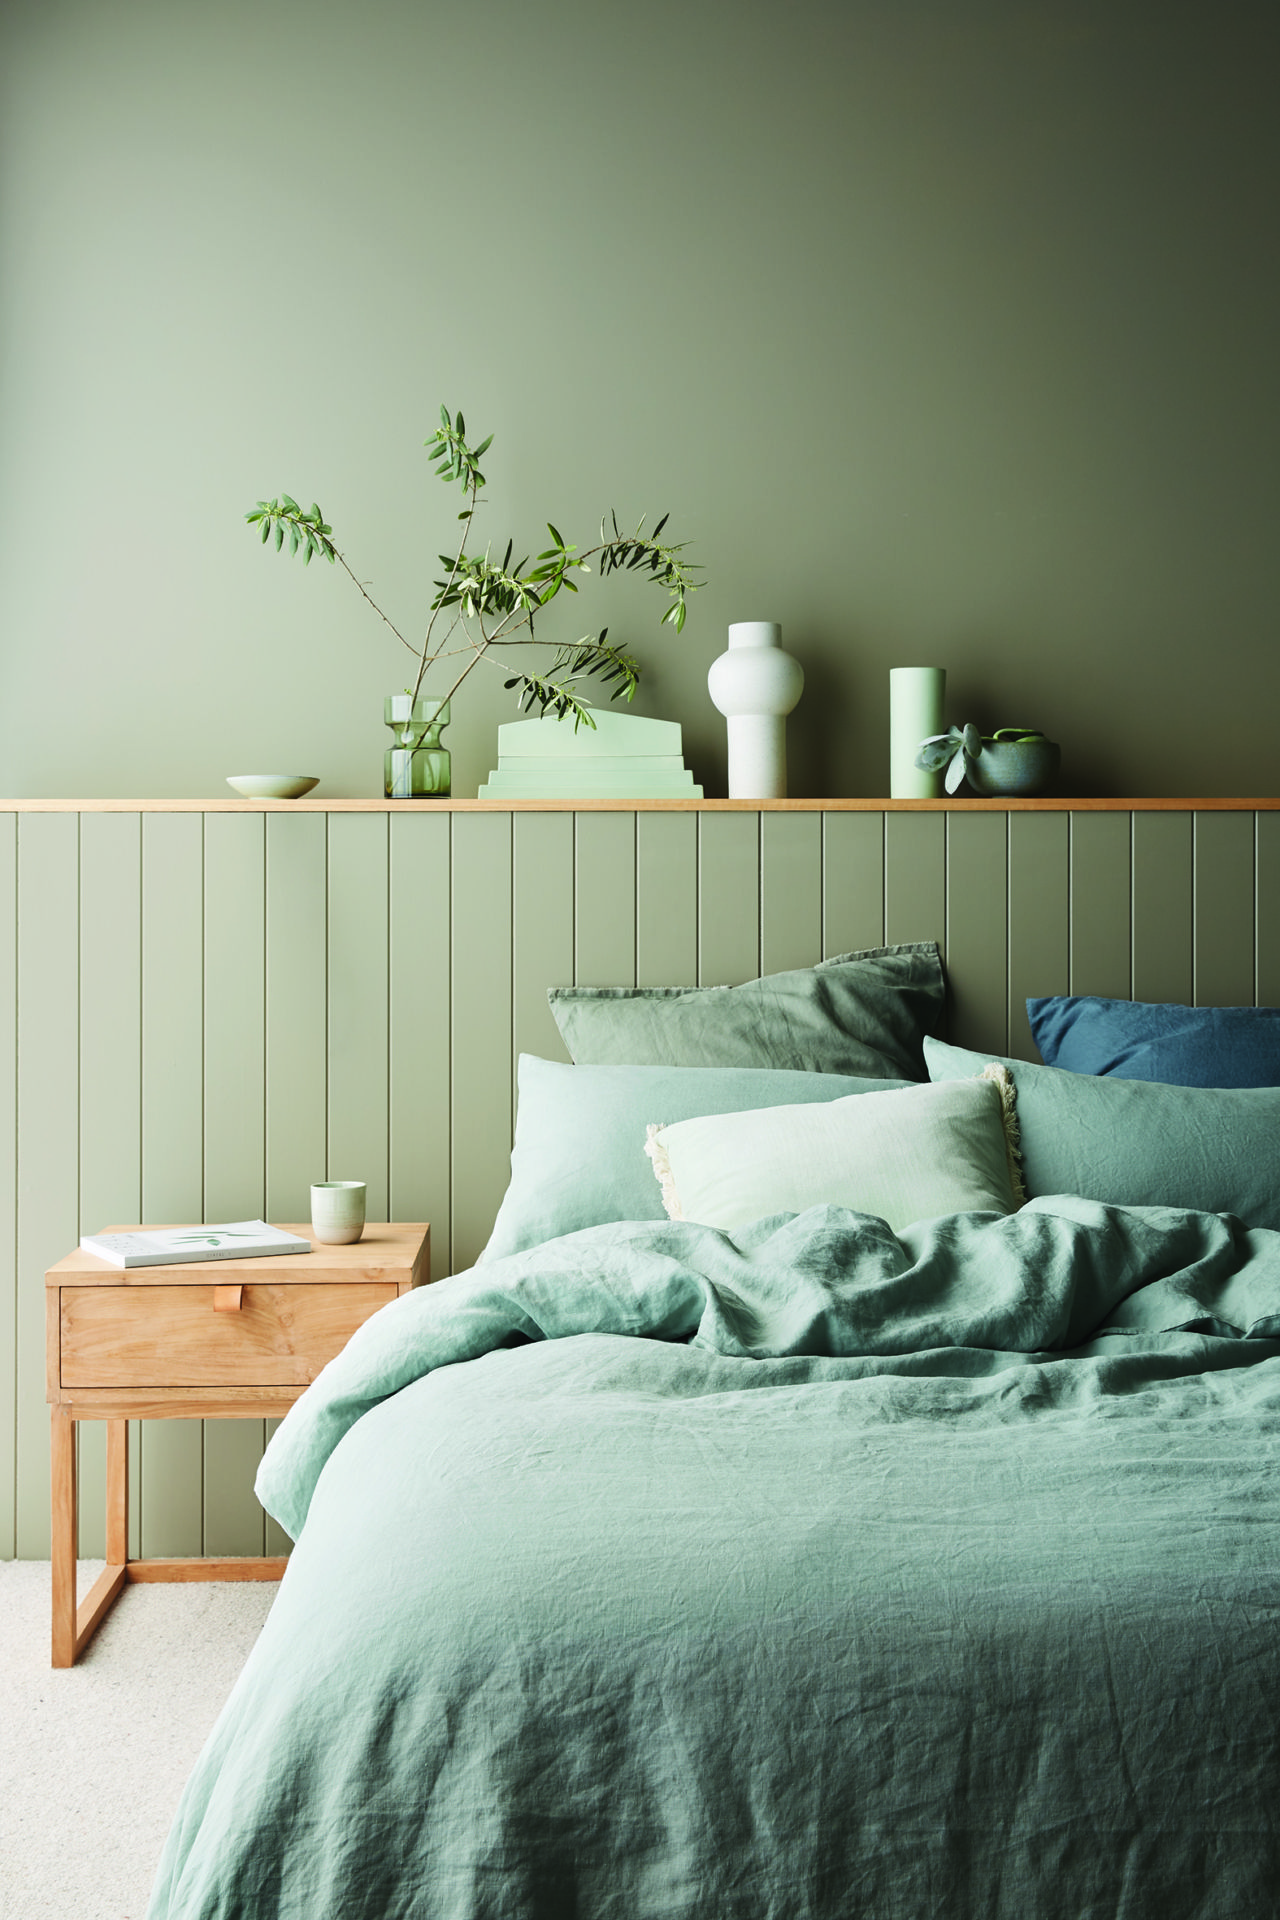 Haymes Paint 2020 colours: A new millennial pink? – The Interiors Addict